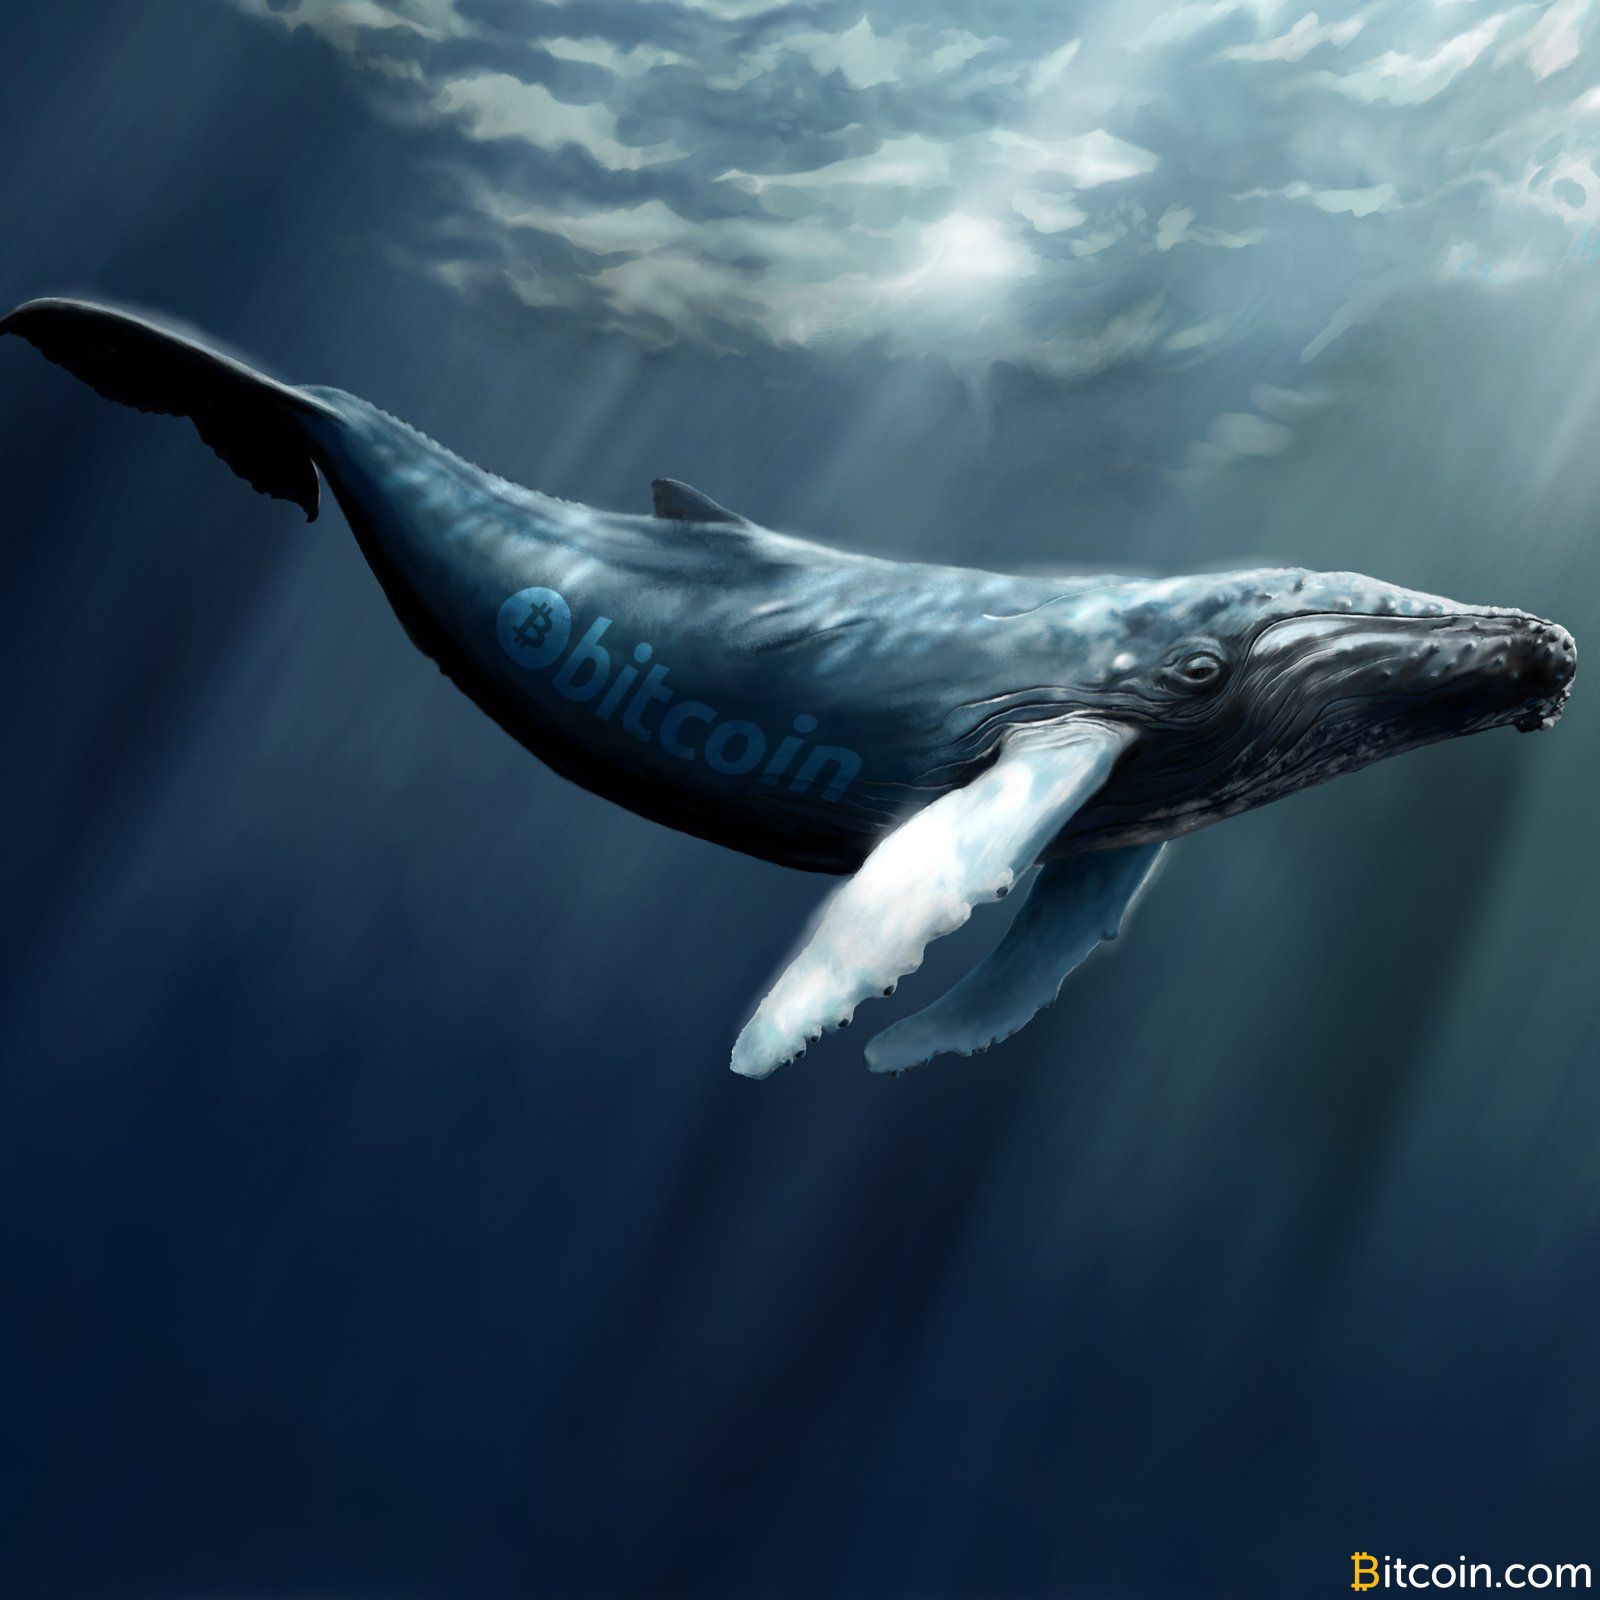 55% of All BTC Is Parked in Whale-Sized Wallets